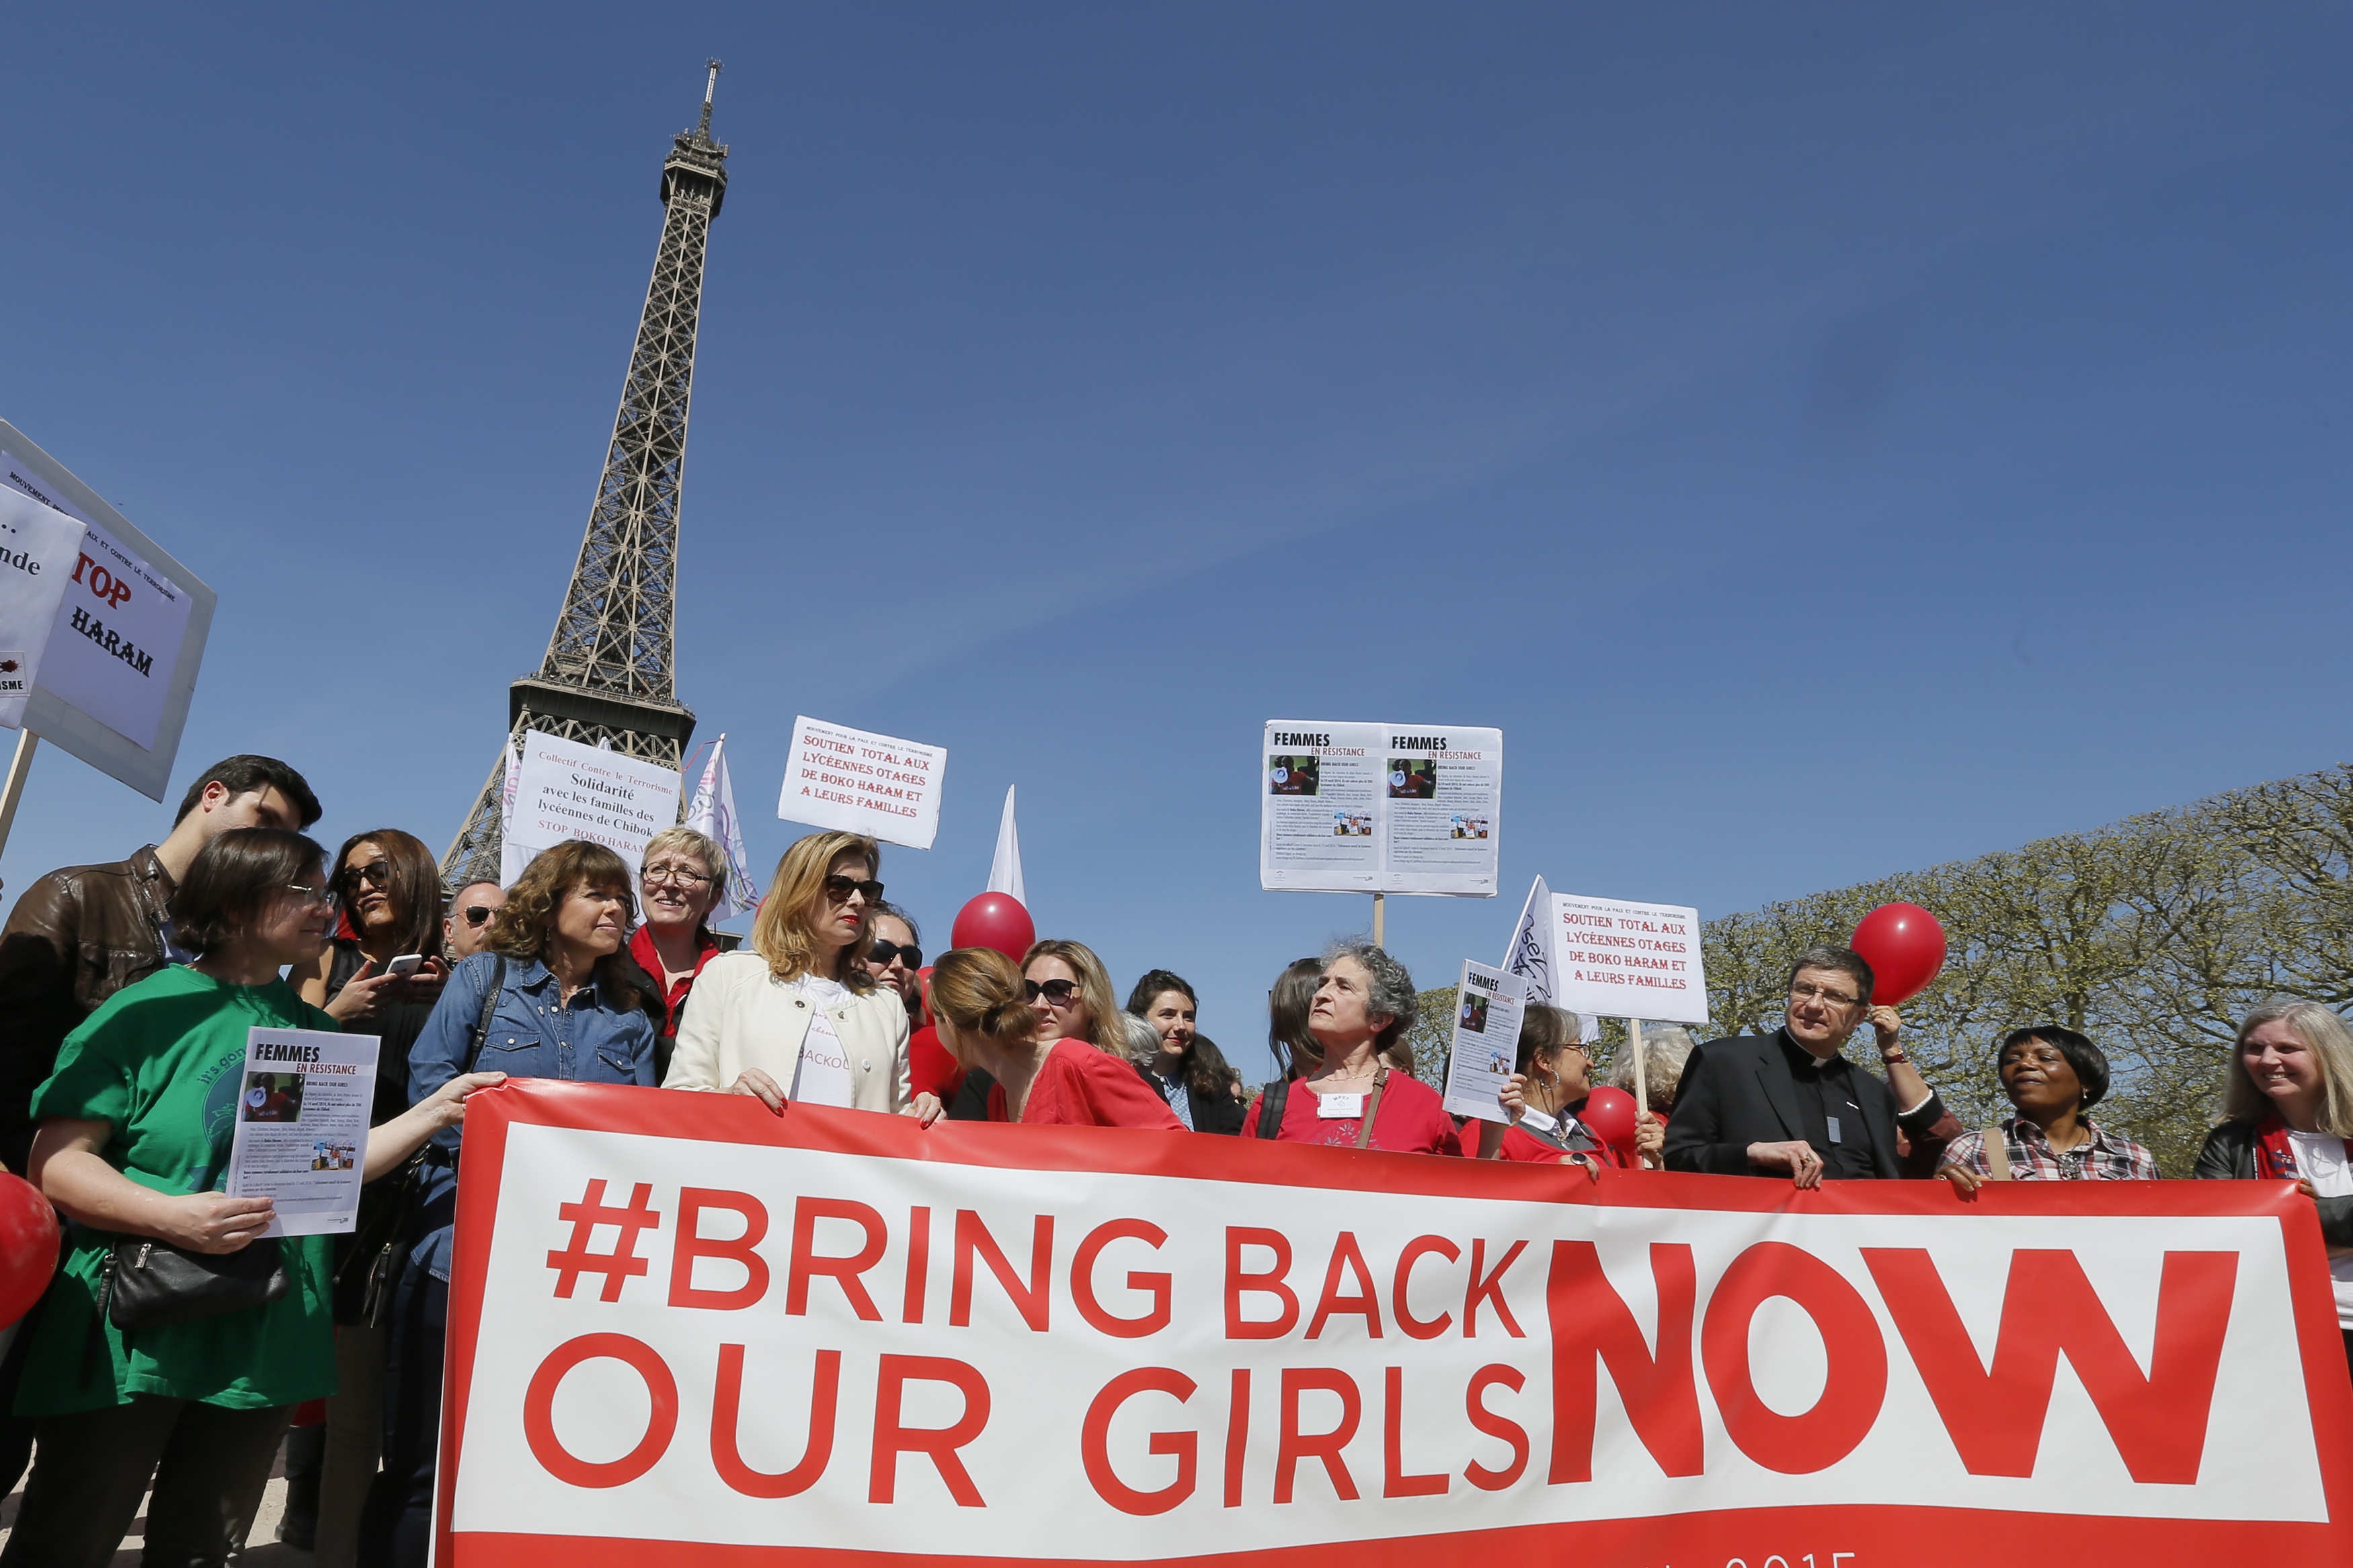 Former French first lady Valerie Trierweiler attends a gathering  Bring Back Our Girls  near the Eiffel Tower in Paris on April 14, 2015 to mark one year since more than 200 schoolgirls were kidnapped in Chibok, north-eastern Nigeria, by Nigerian Islamist rebel group Boko Haram.